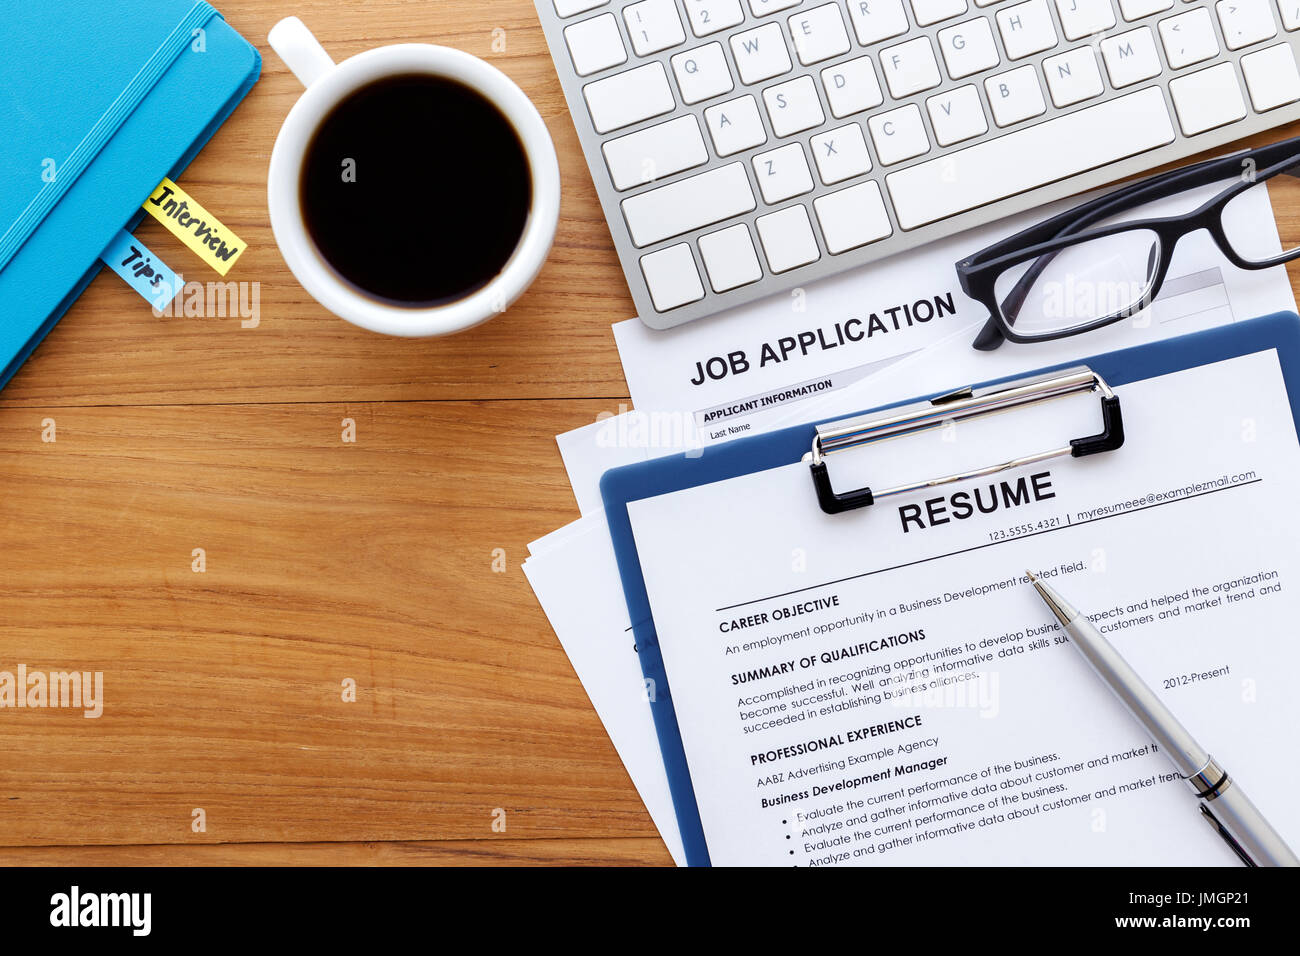 Application Apply Online Job Search Stockfotos & Application Apply ...